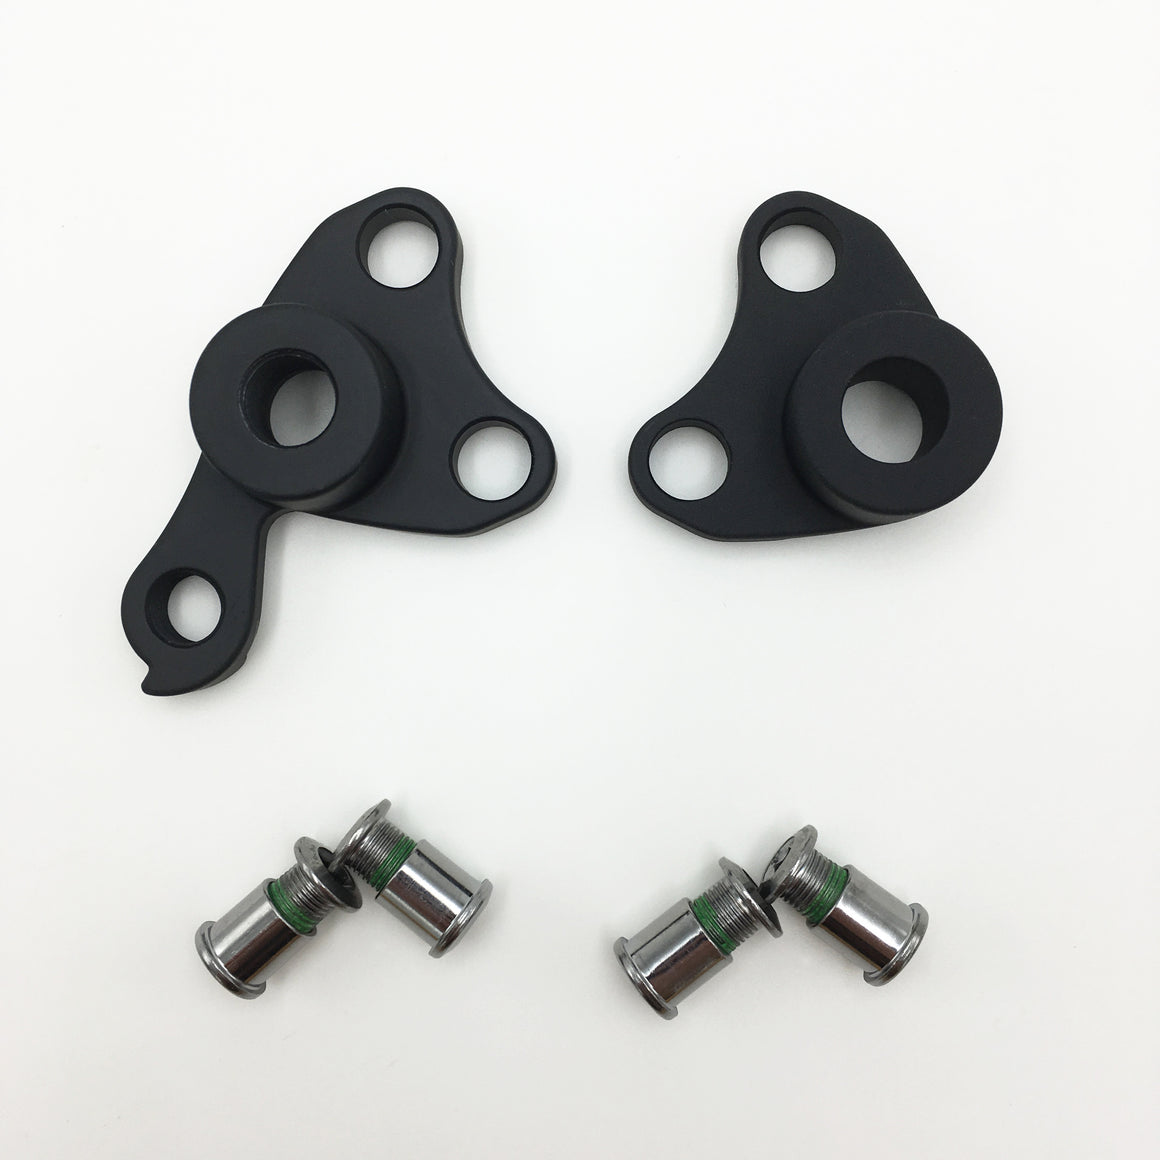 Thru-axle modular dropouts only 142/12 - 1.5 thread pitch